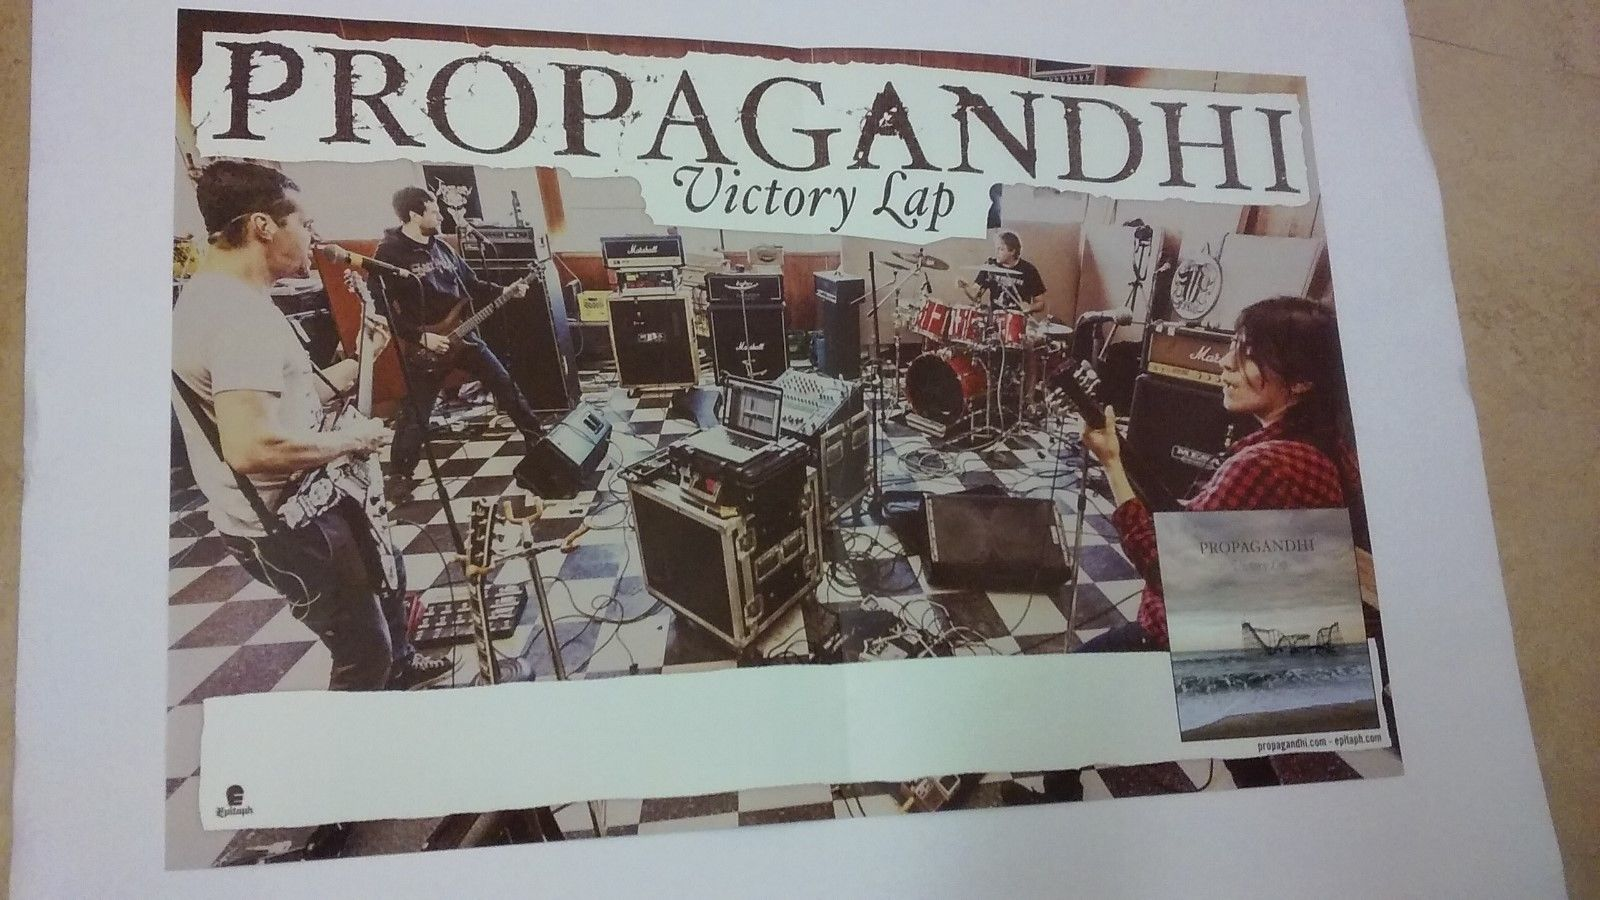 ^ POSTER by PROPAGANDHI victory lap For the bands tour promo gig album cd